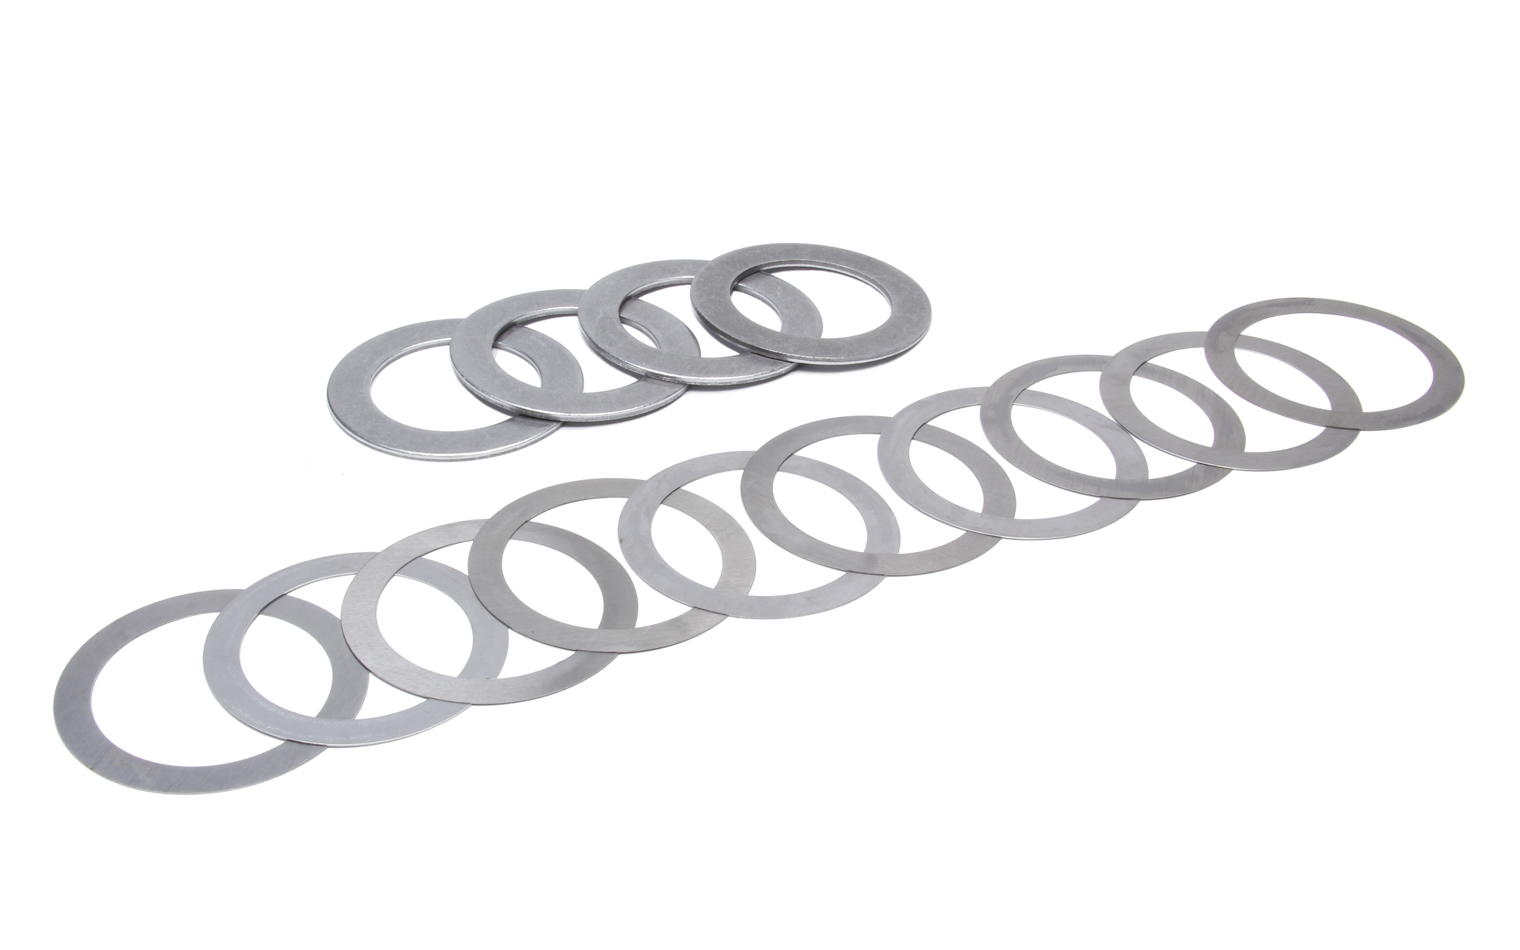 Ford 8.8 Carrier Shims